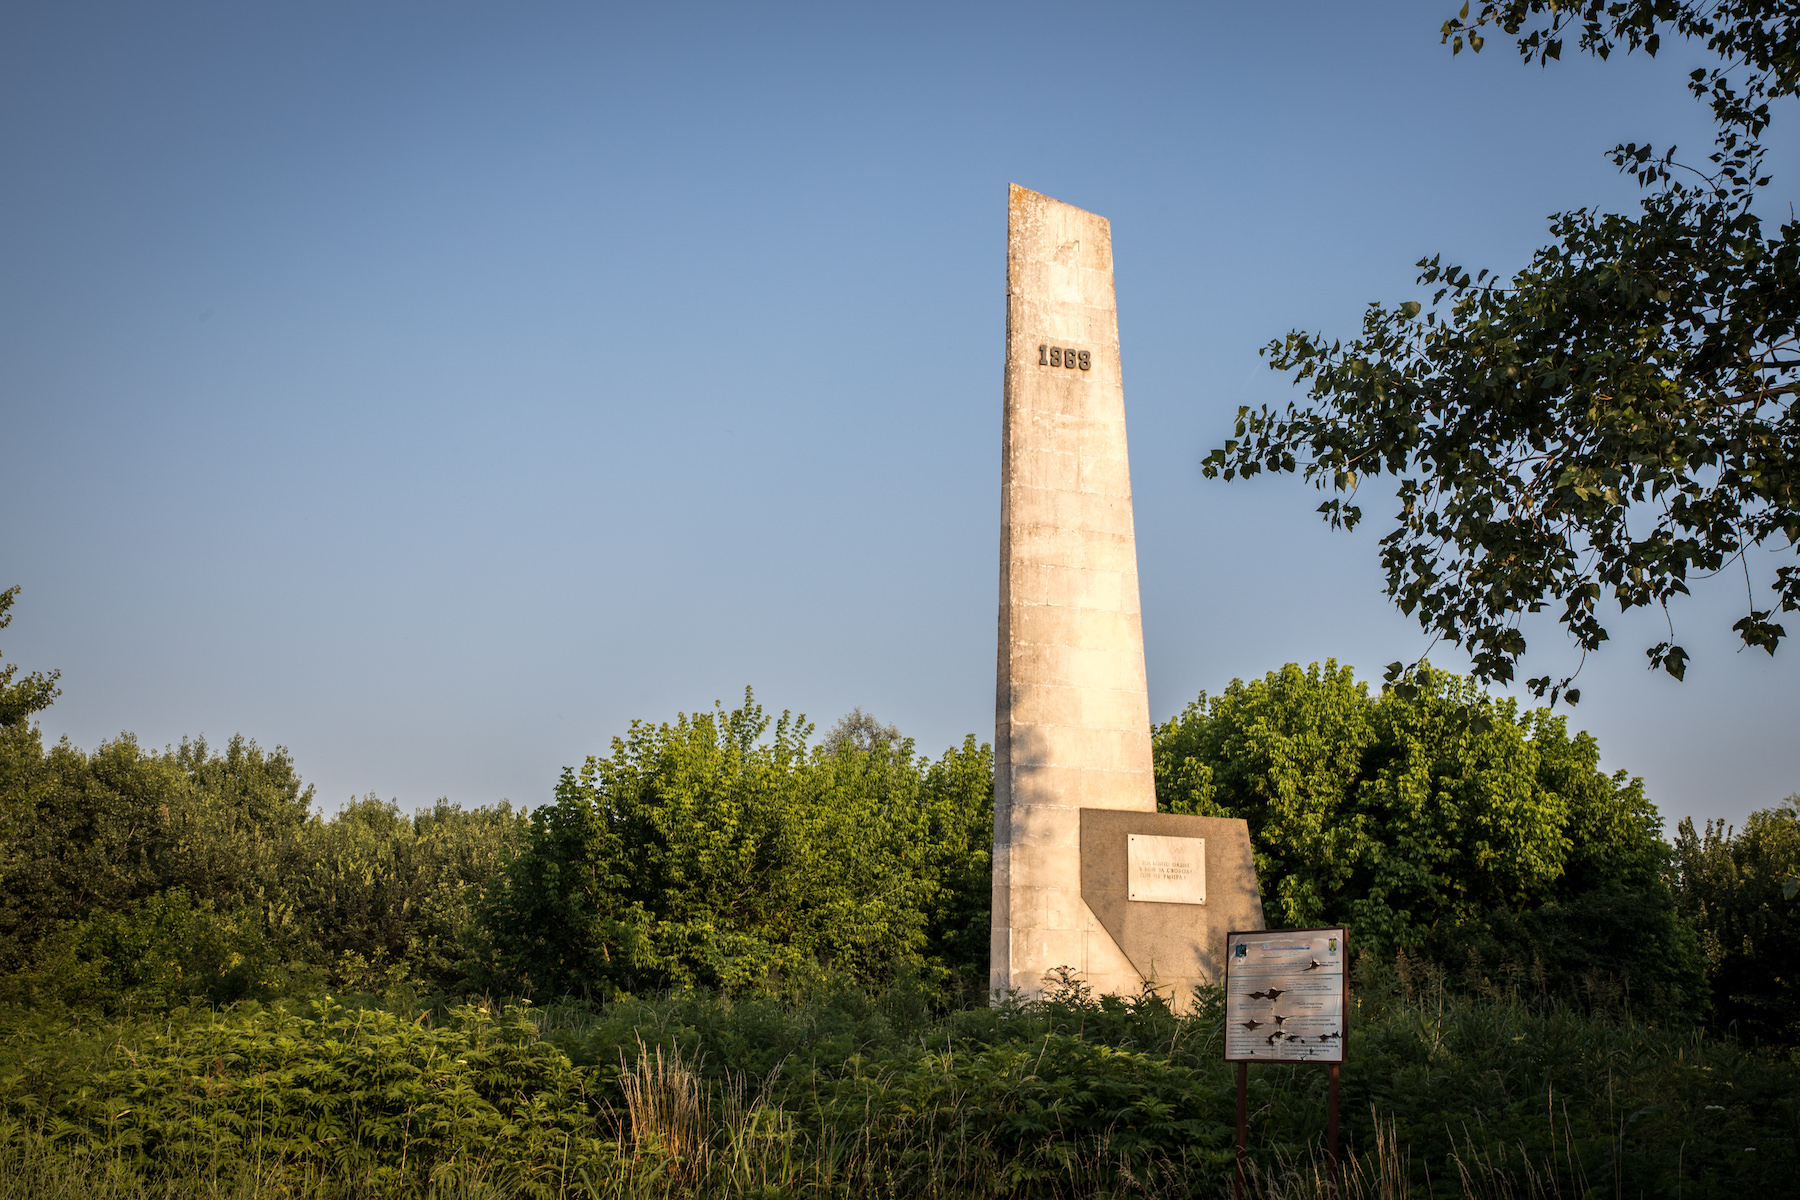 The Monument to Hadzhi Dimitâr and Stefan Karadzha, near the village of Basarbovo, marks the place where their detachment crossed the Danube in 1868.